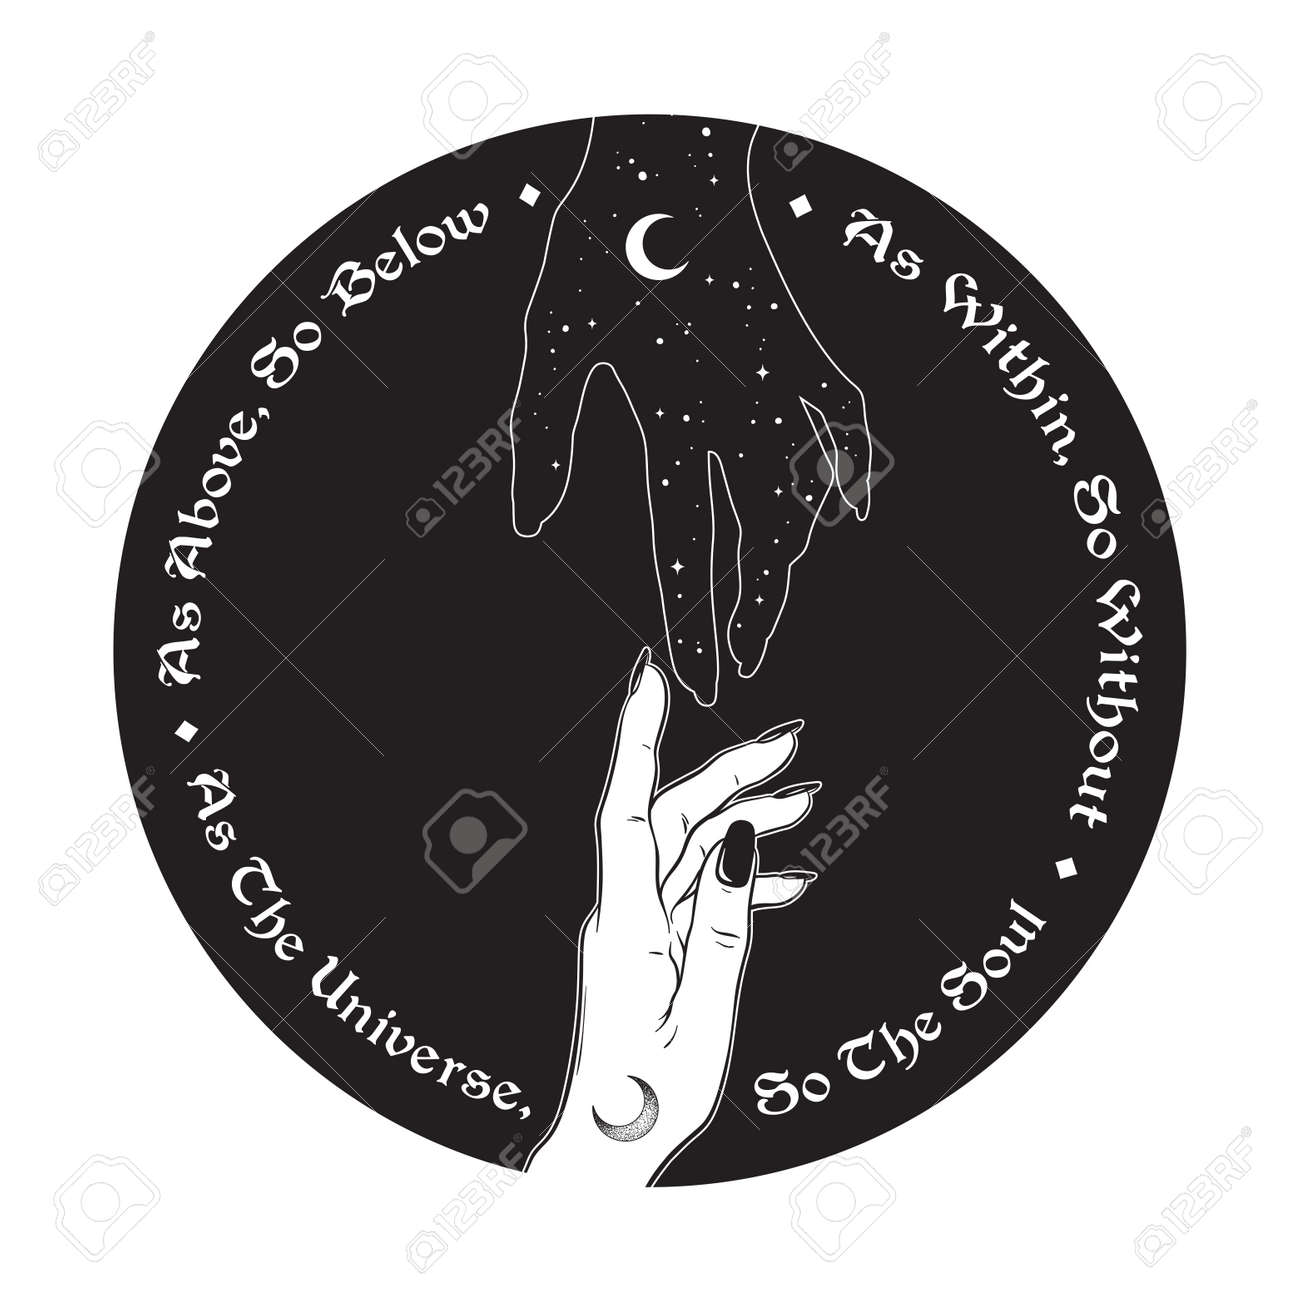 Hand of universe reaching out to human hand. Inscription is a maxim in hermeticism and sacred geometry. As above, so below. Black work, flash tattoo or print design vector illustration. - 163870714